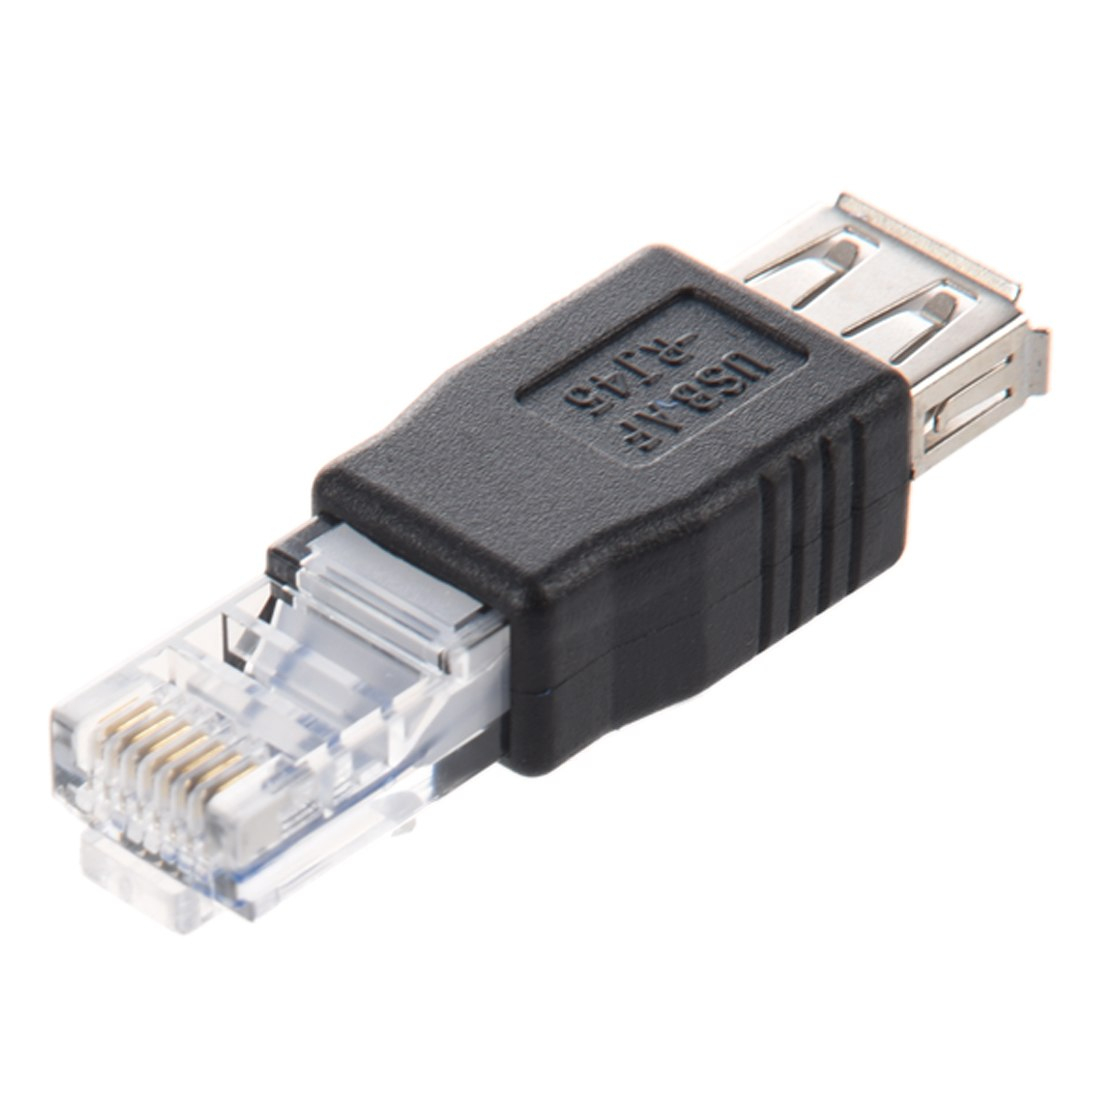 Rj45 Wiring Diagram Moreover Rj45 Db9 Pinout Diagram On Cat5 Rj45